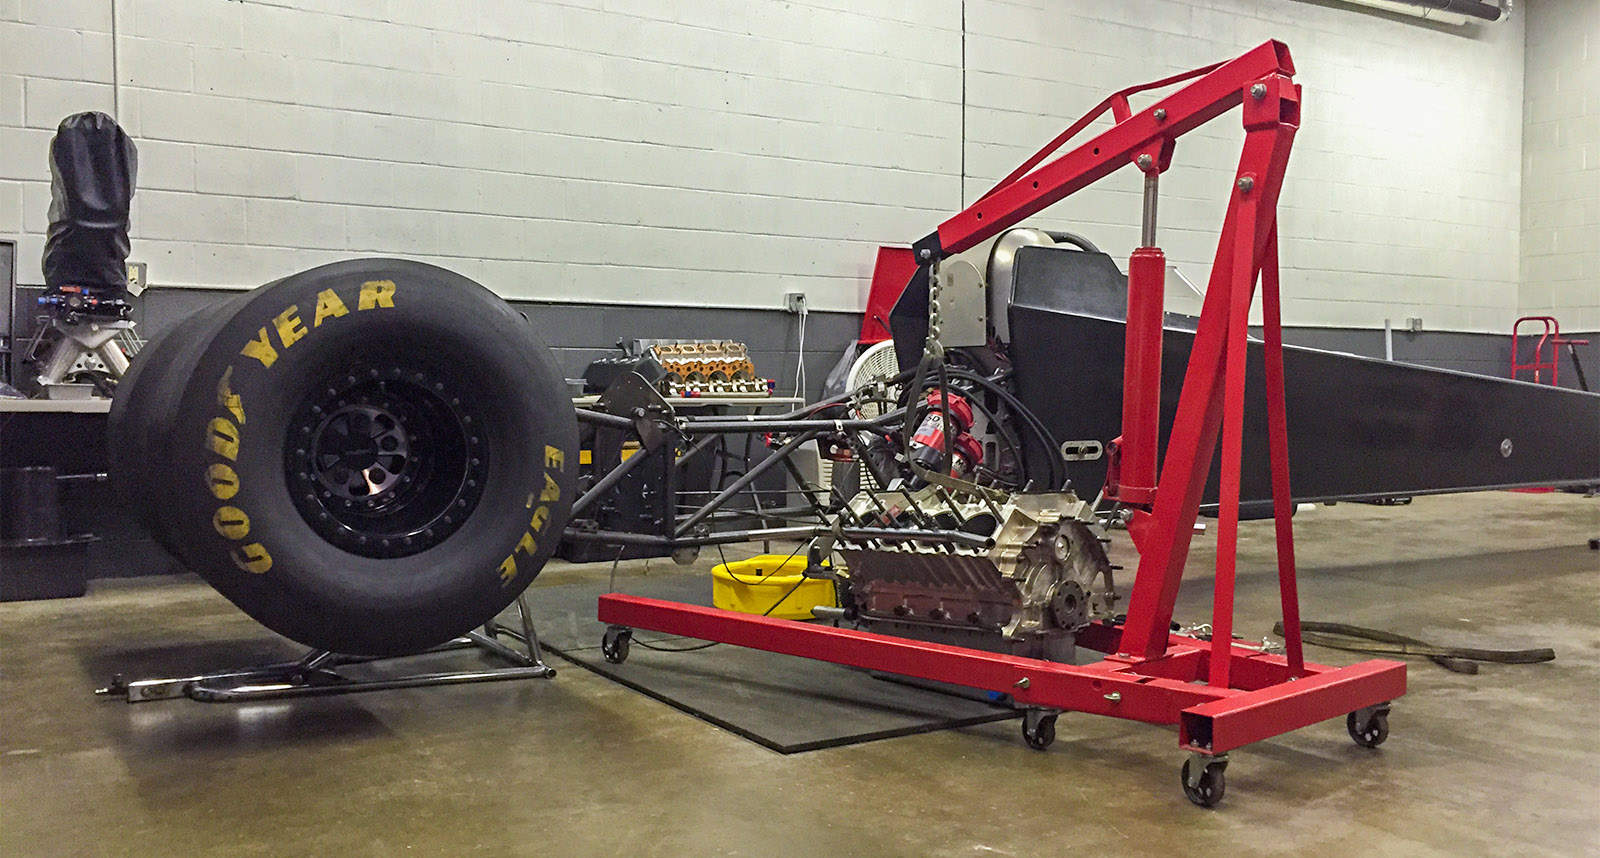 Michalek Brothers Racing will contest the 2016 season with an injected-nitromethane engine combination.